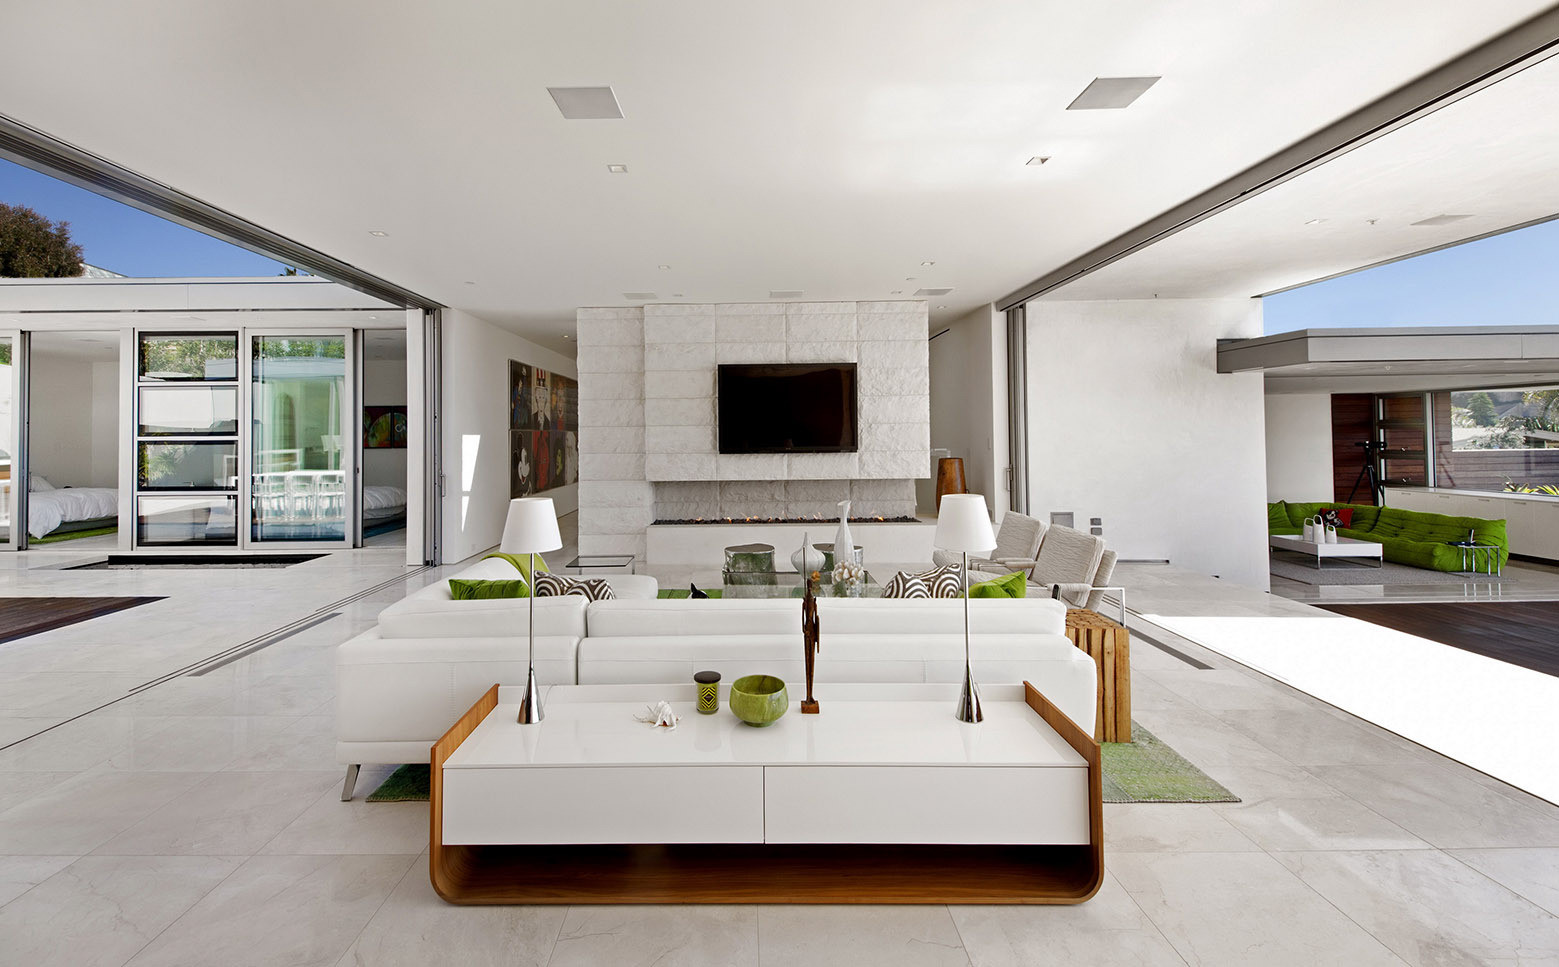 Ehrlich architects win 2015 aia architecture firm award - Limposante residence contemporaine de ehrlich architects ...